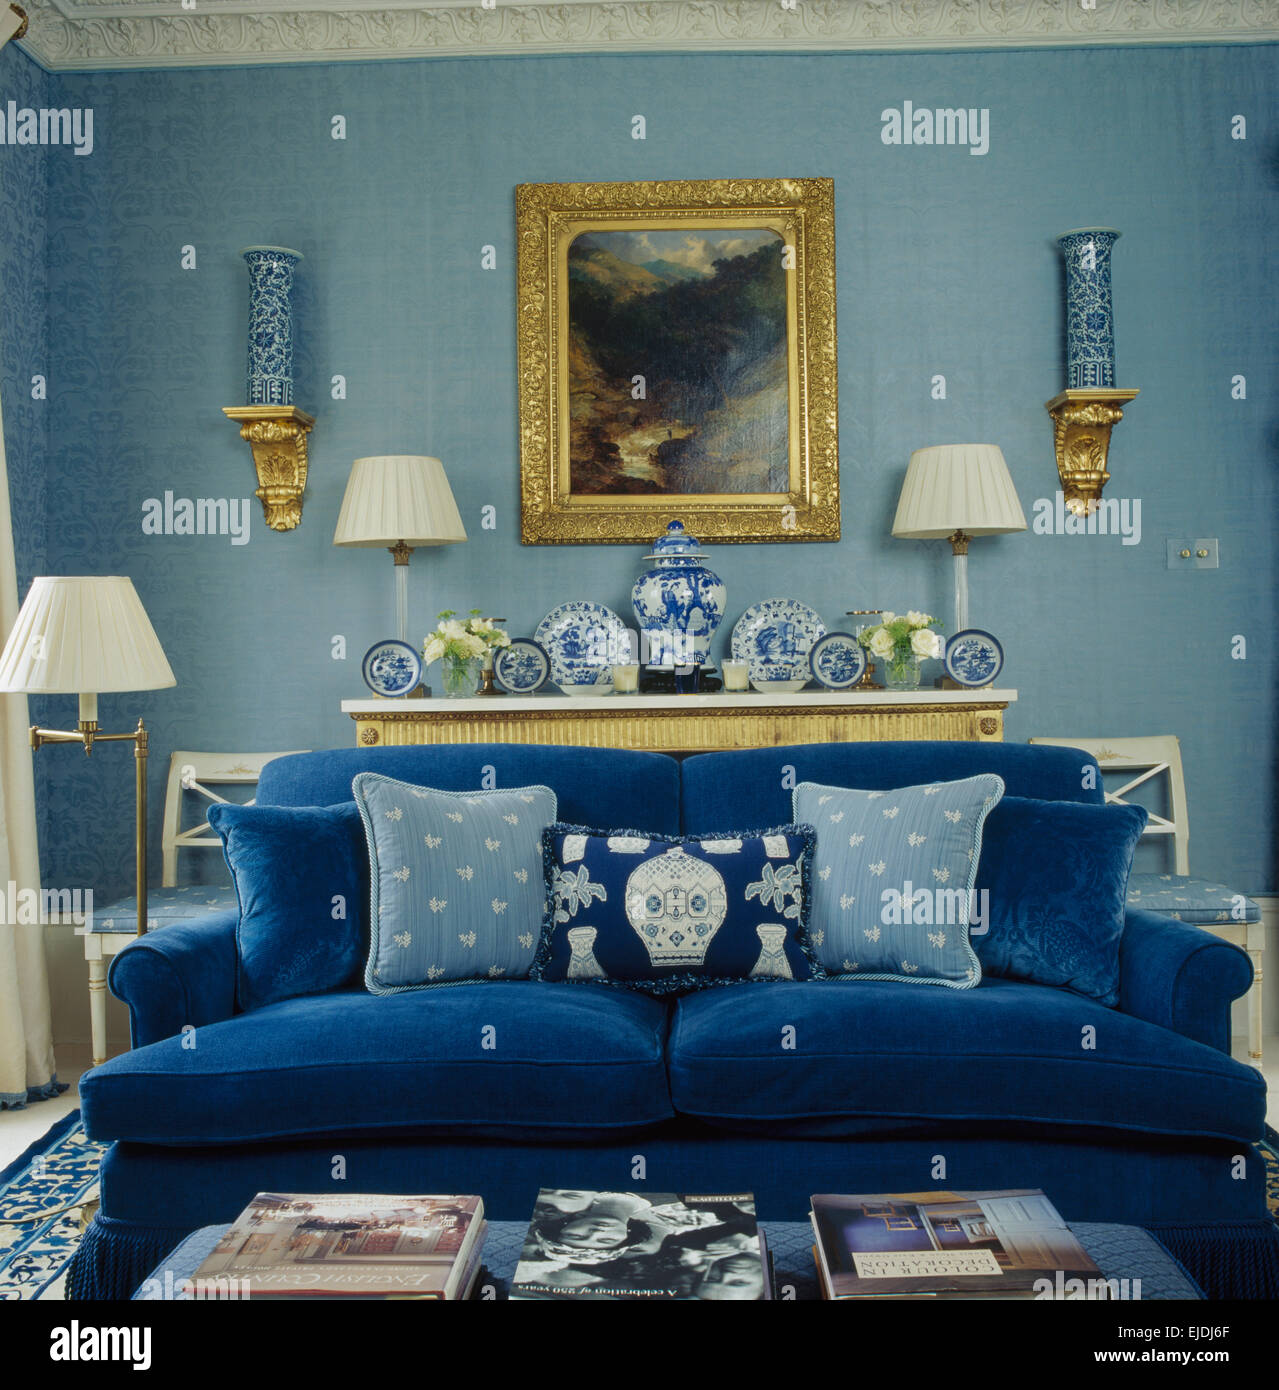 Ordinaire Gilt Framed Picture On Wall Behind Cobalt Blue Sofa With Toning Blue  Cushions In Blue Living Room With Small Gilt Shelves